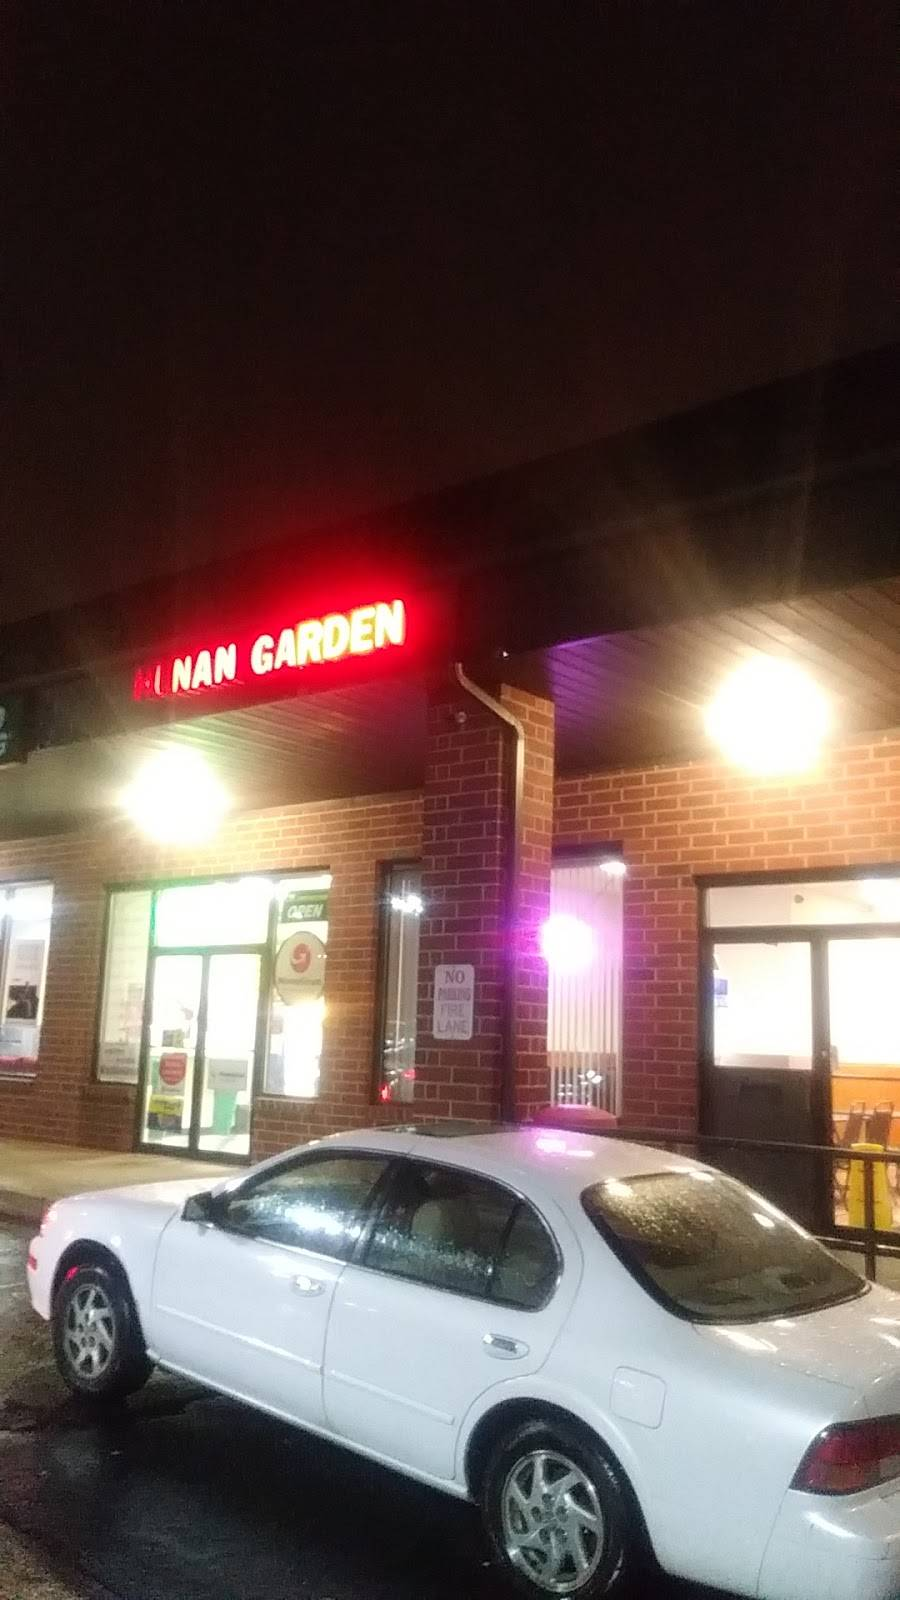 Hunan Garden | meal delivery | 1224 Liberty St, Allentown, PA 18102, USA | 6104323509 OR +1 610-432-3509